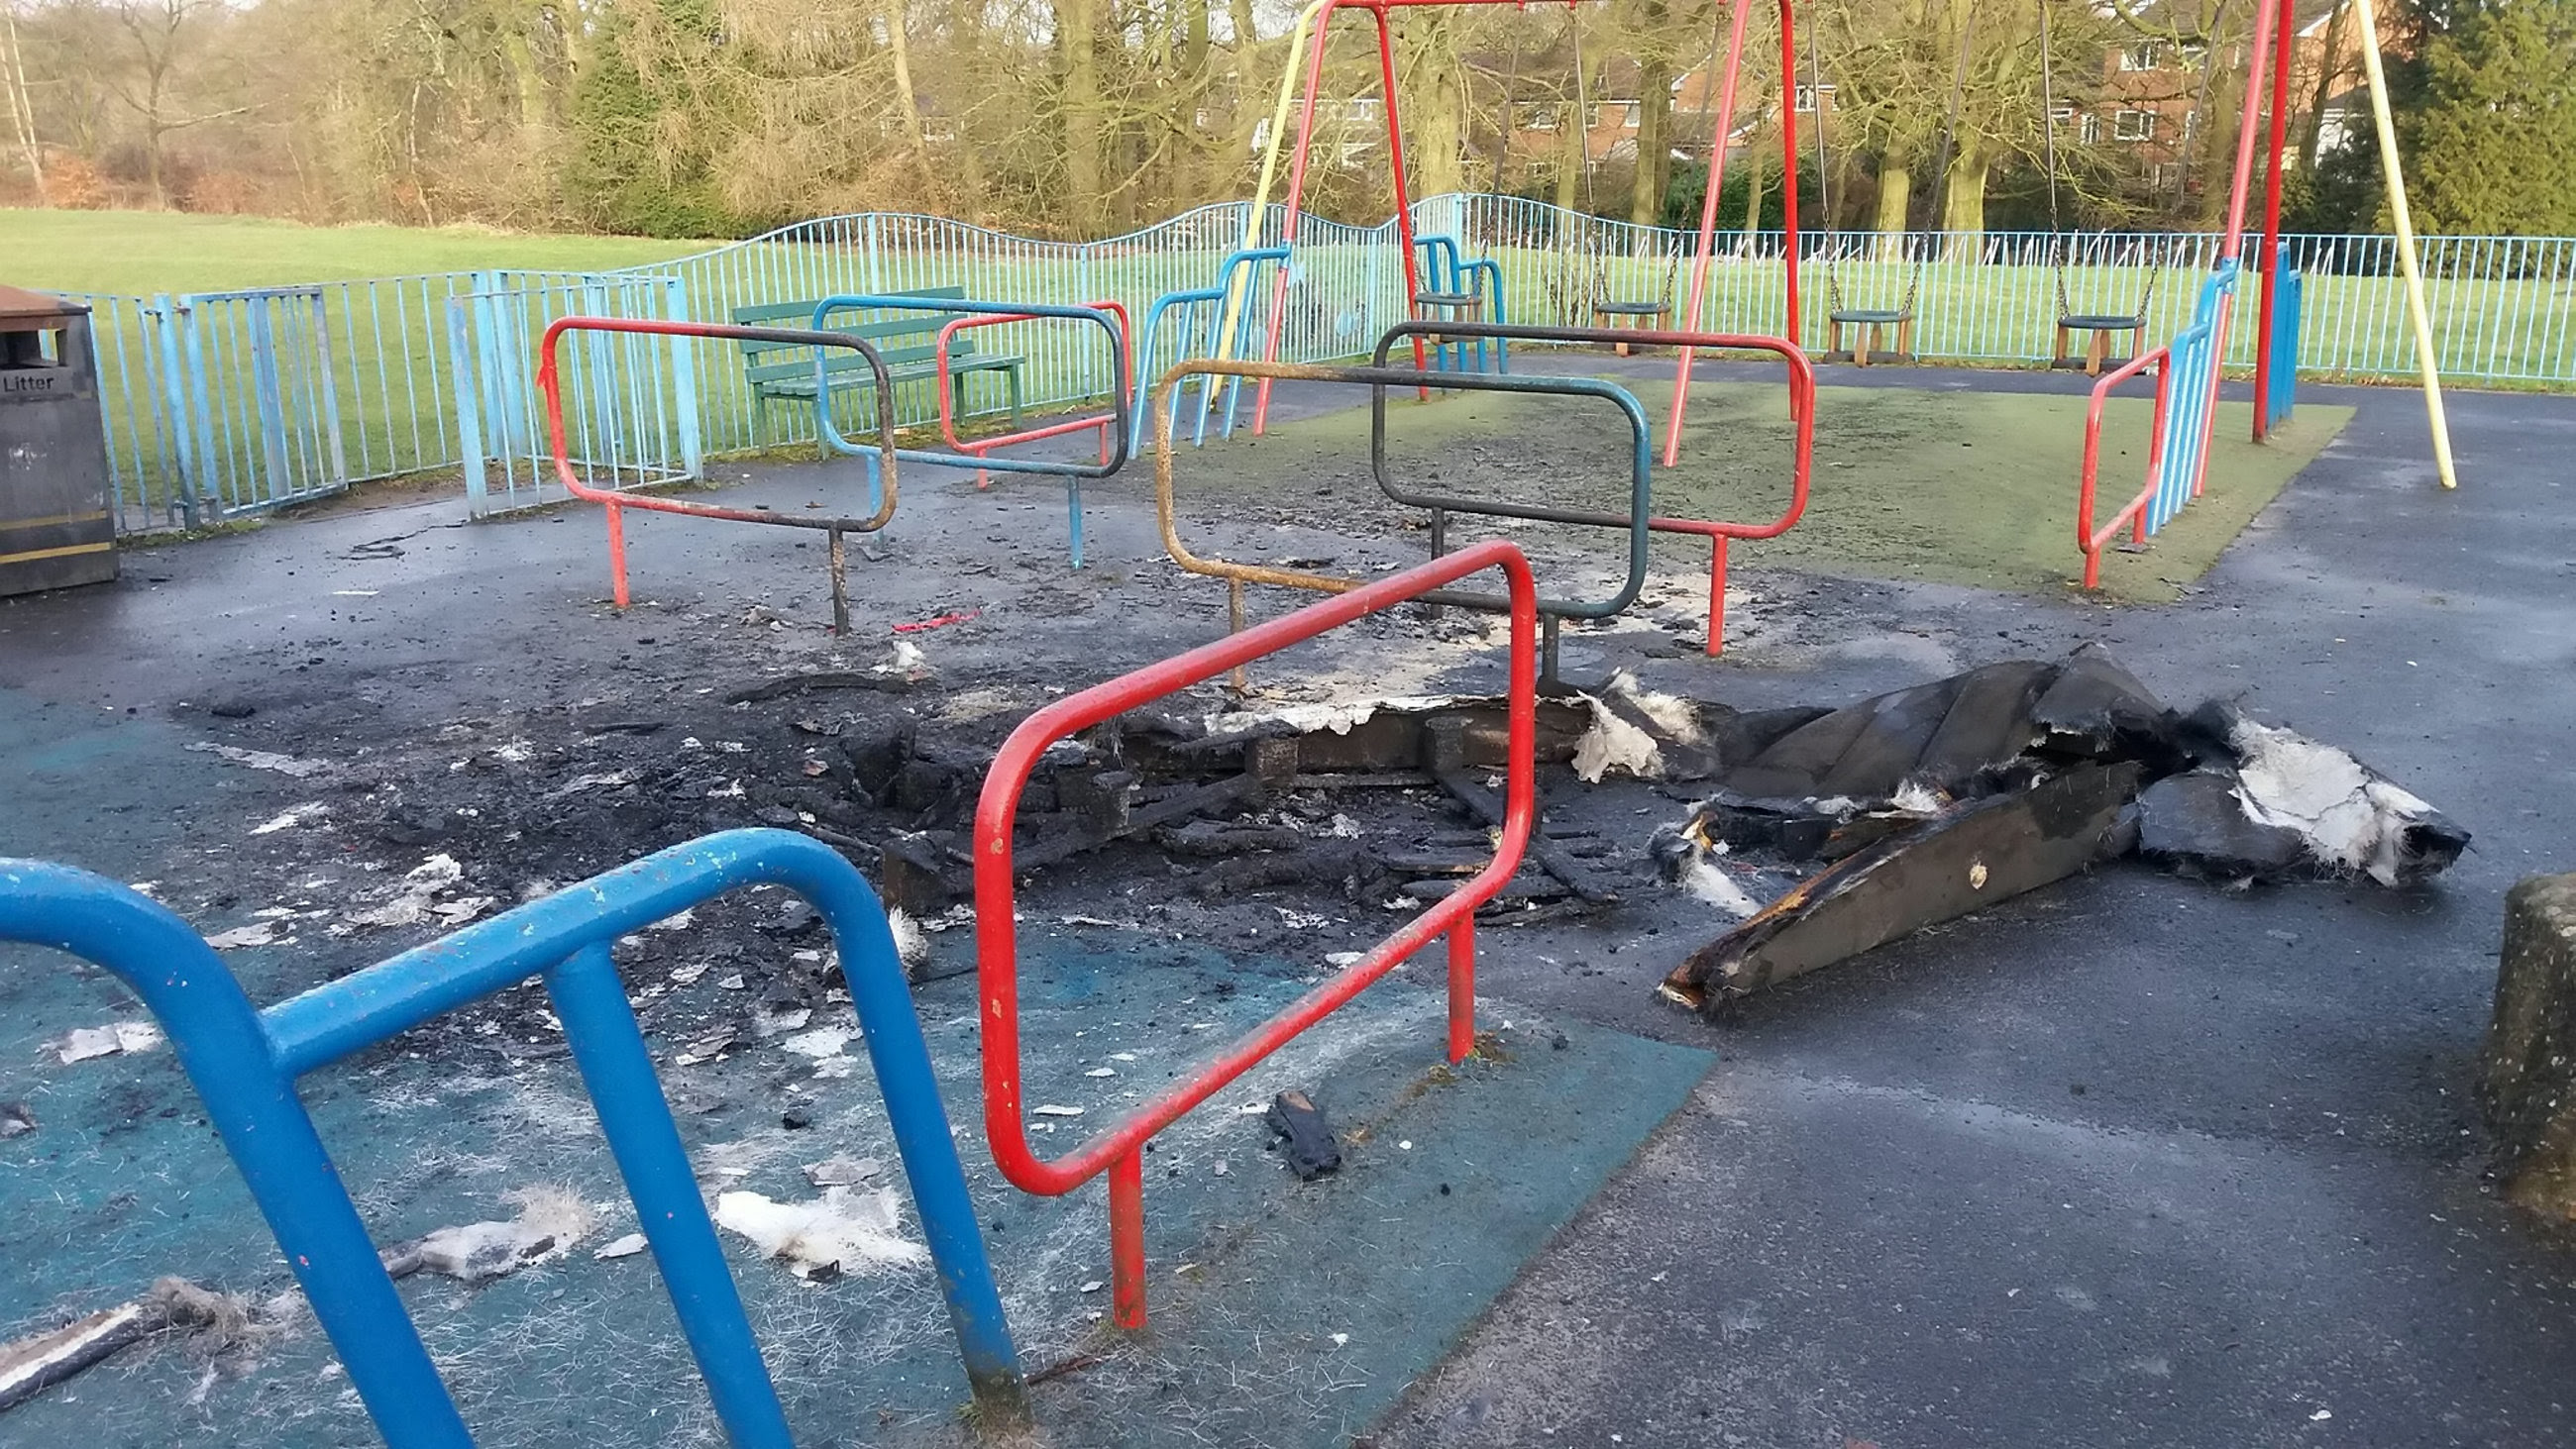 Remnants of a fire at Longsight Park, Bolton. Credit: SWNS